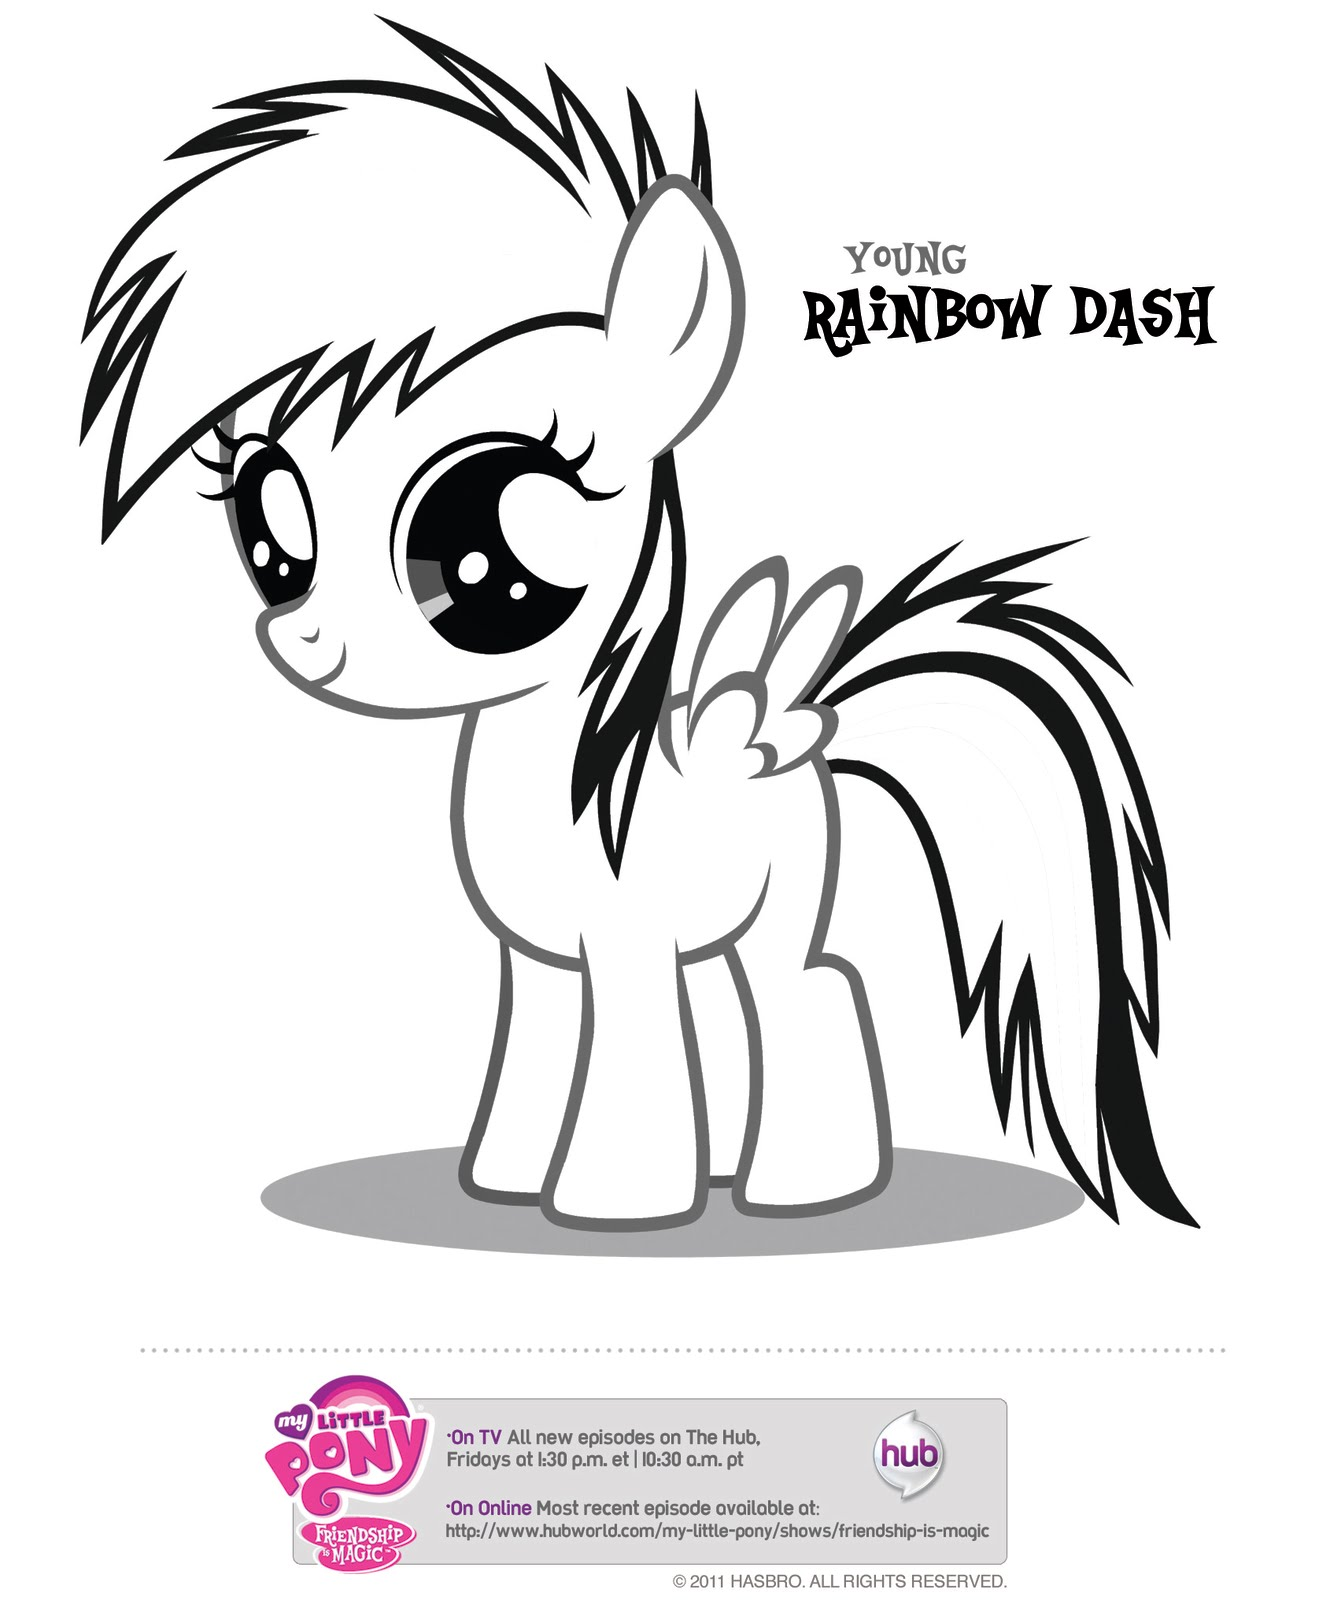 my little pony coloring pages young rainbow dash